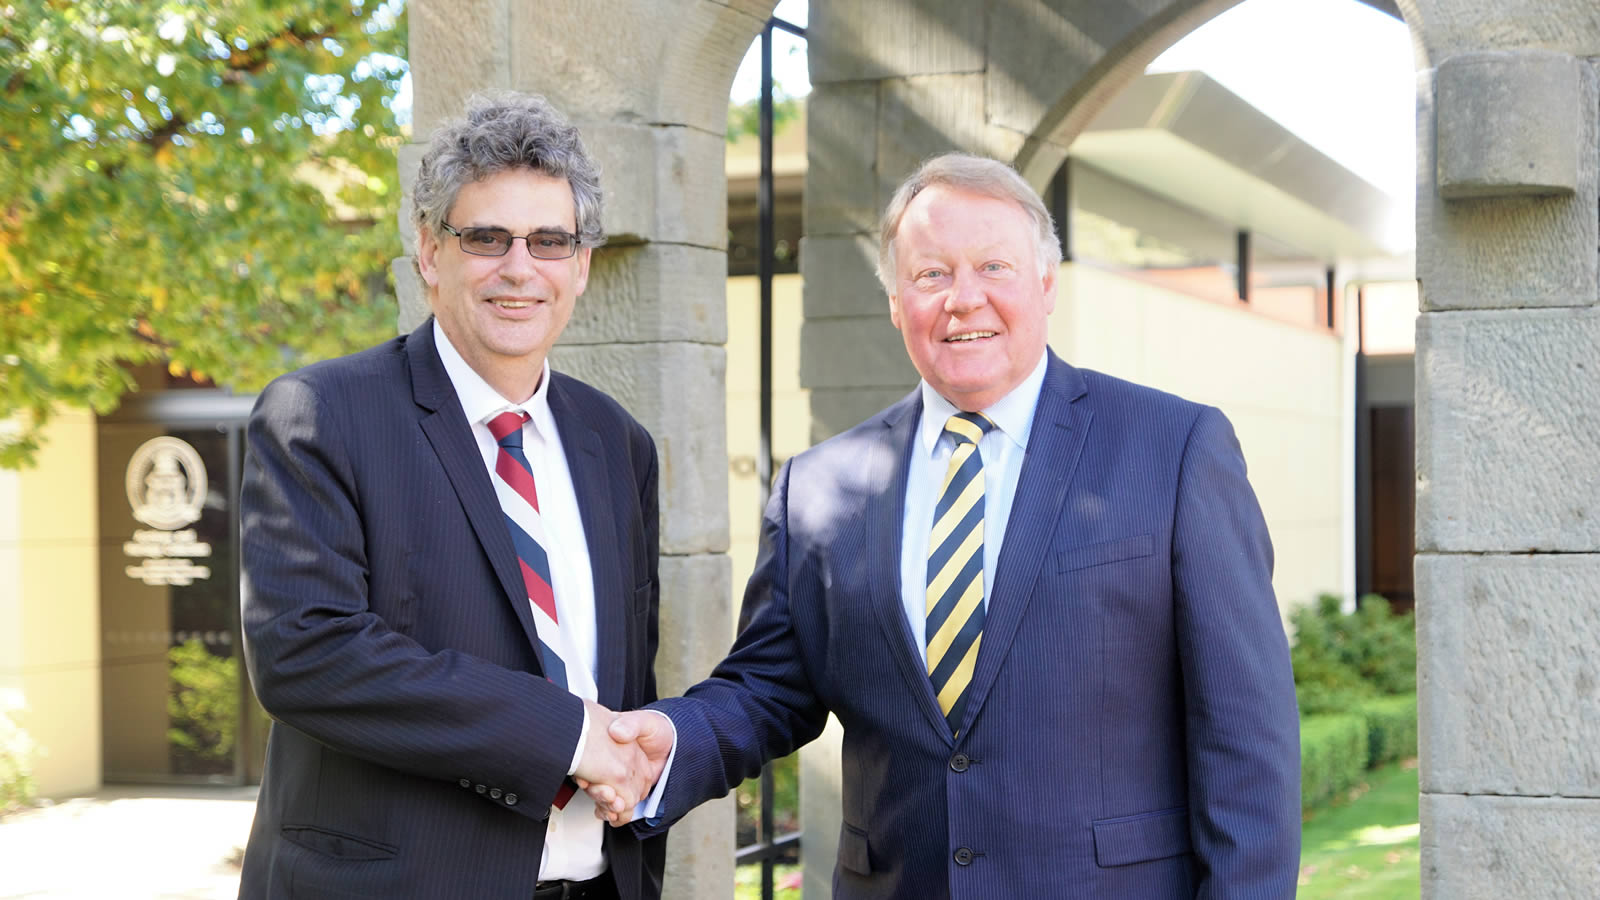 Chairman of The Hutchins School Board, Professor Marcus Haward congratulates Headmaster, Mr Warwick Dean on the announcement of his retirement (large)